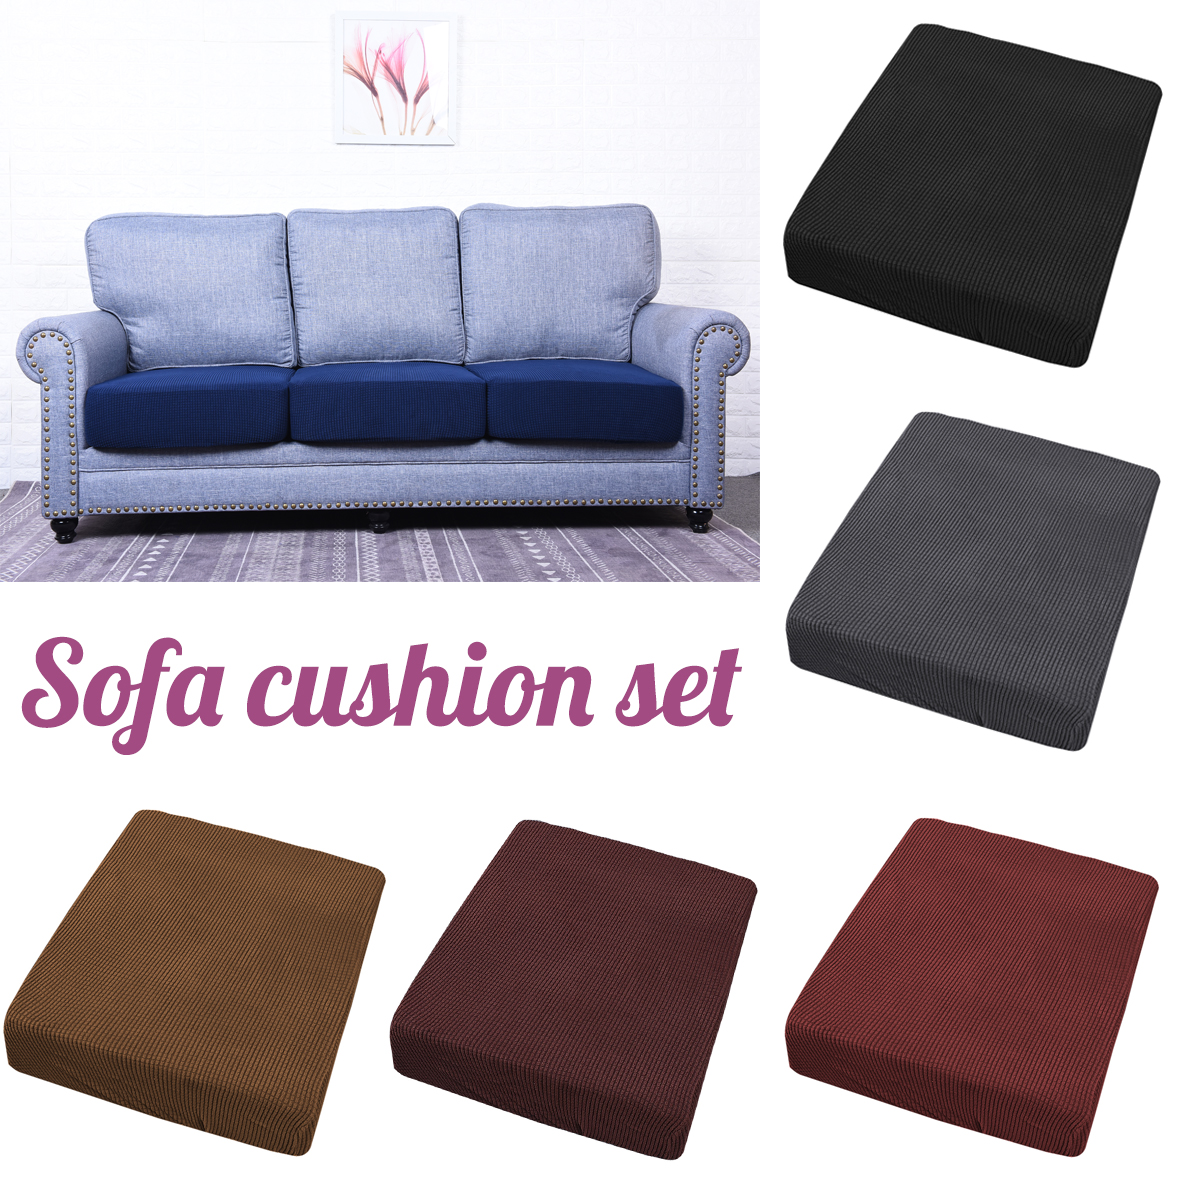 Replacement Sofa Seat Cushion Covers: Fabric Slip Covers Protector Replacement Sofa Seat Cushion